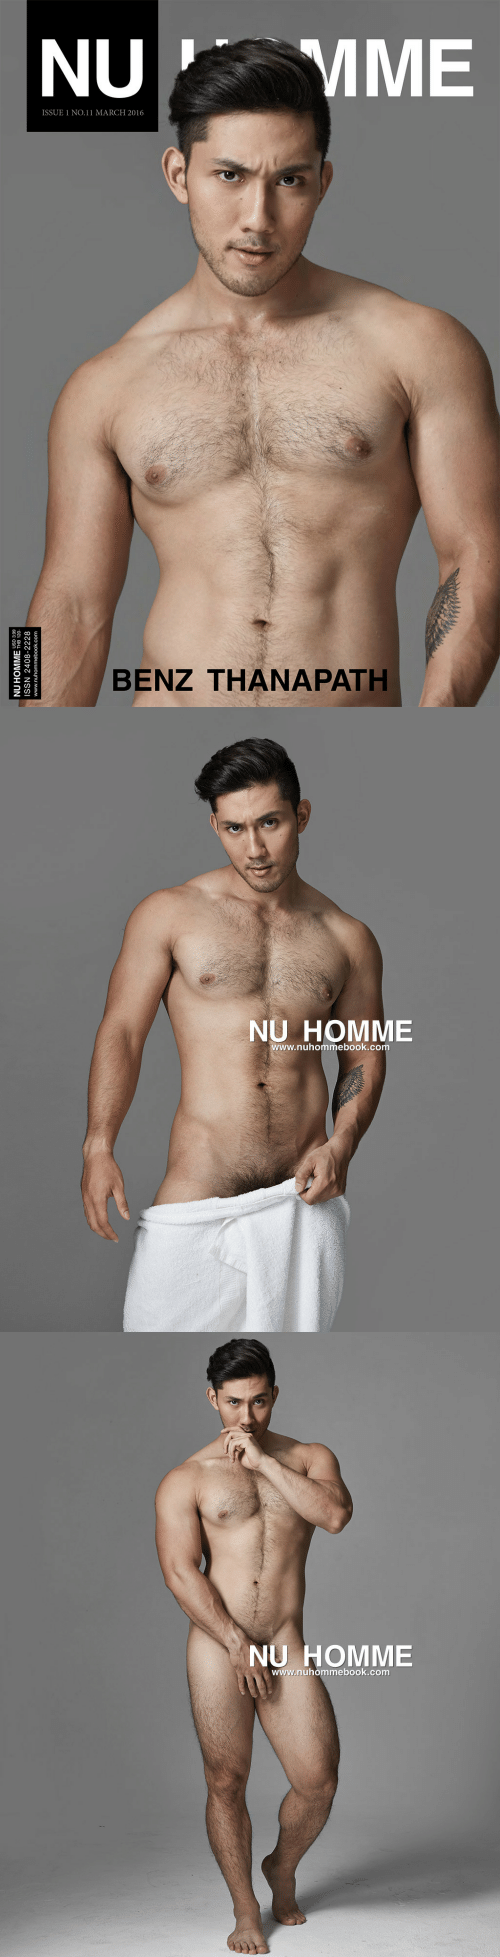 Com, Benz, and March: MME  NU  ISSUE 1 NO.11 MARCH 2016  BENZ THANAPATH  NU HOMME HB 120  ISSN 2408-2228  www.nuhommebook.com   NU HOMME  www.nuhommebook.com   NU HOMME  www.nuhommebook.com